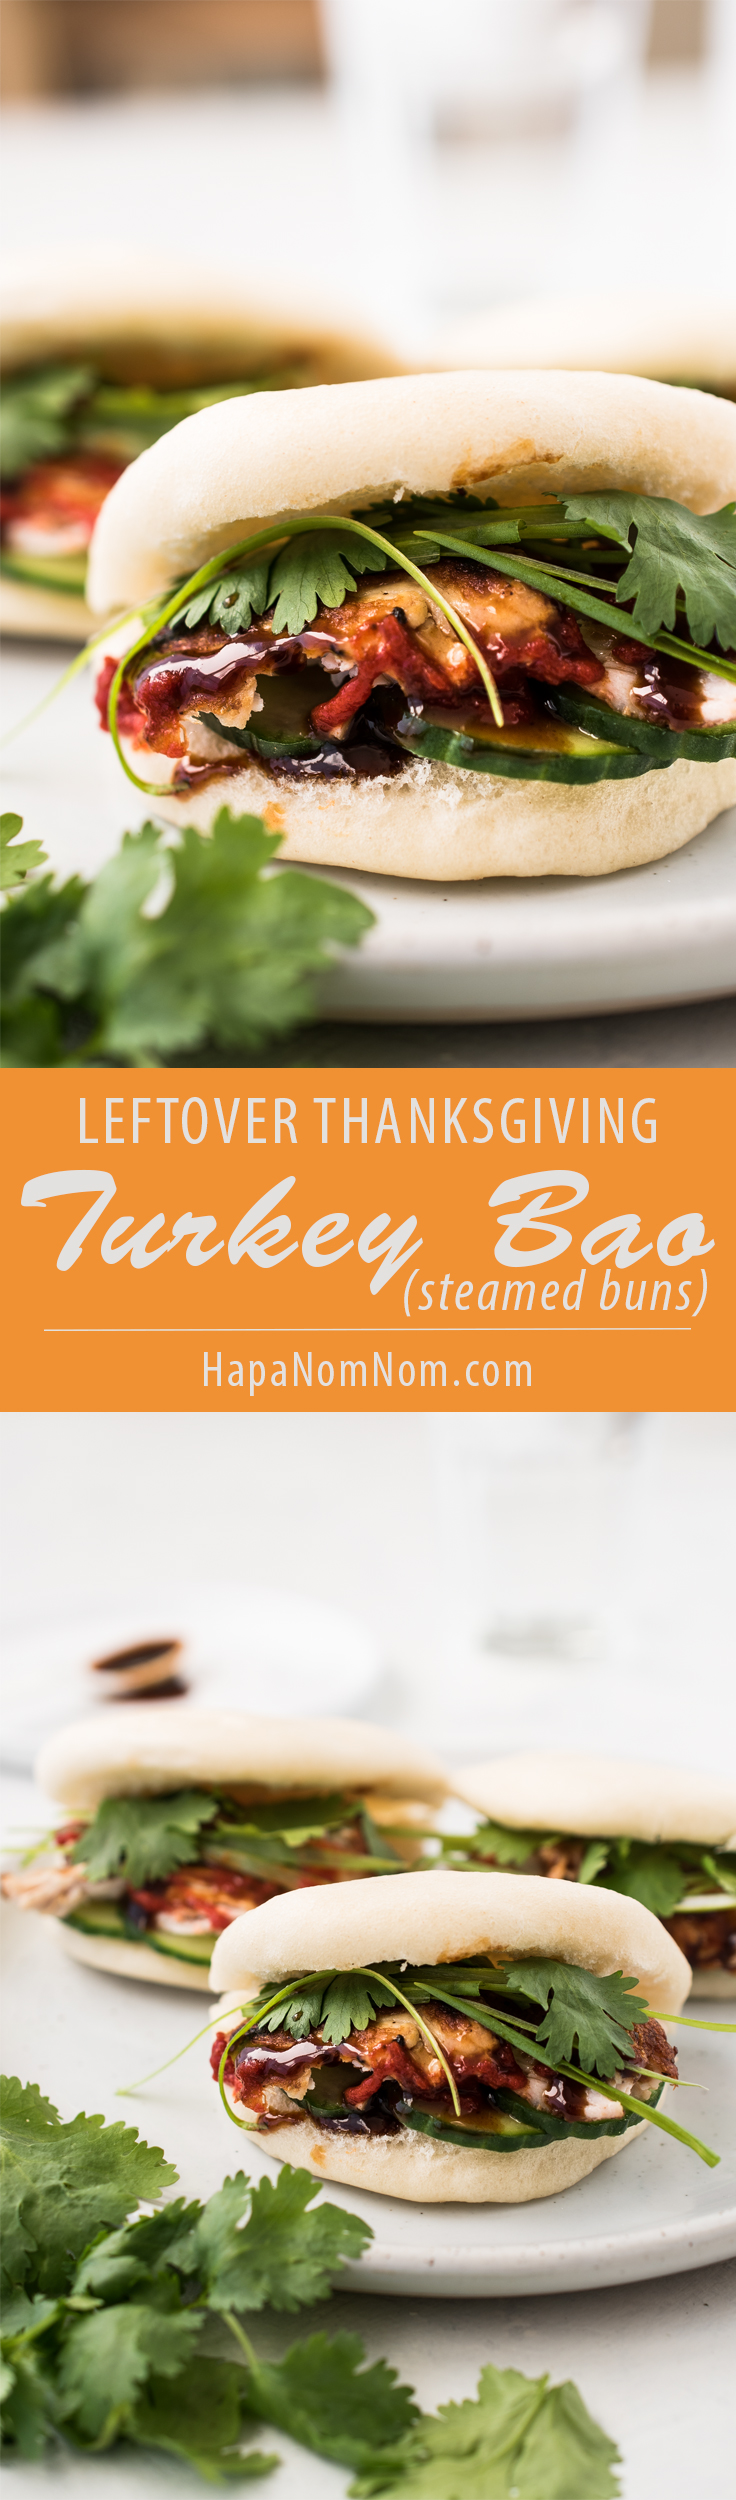 Looking to transform that leftover turkey sandwich? Try a Turkey Bao!